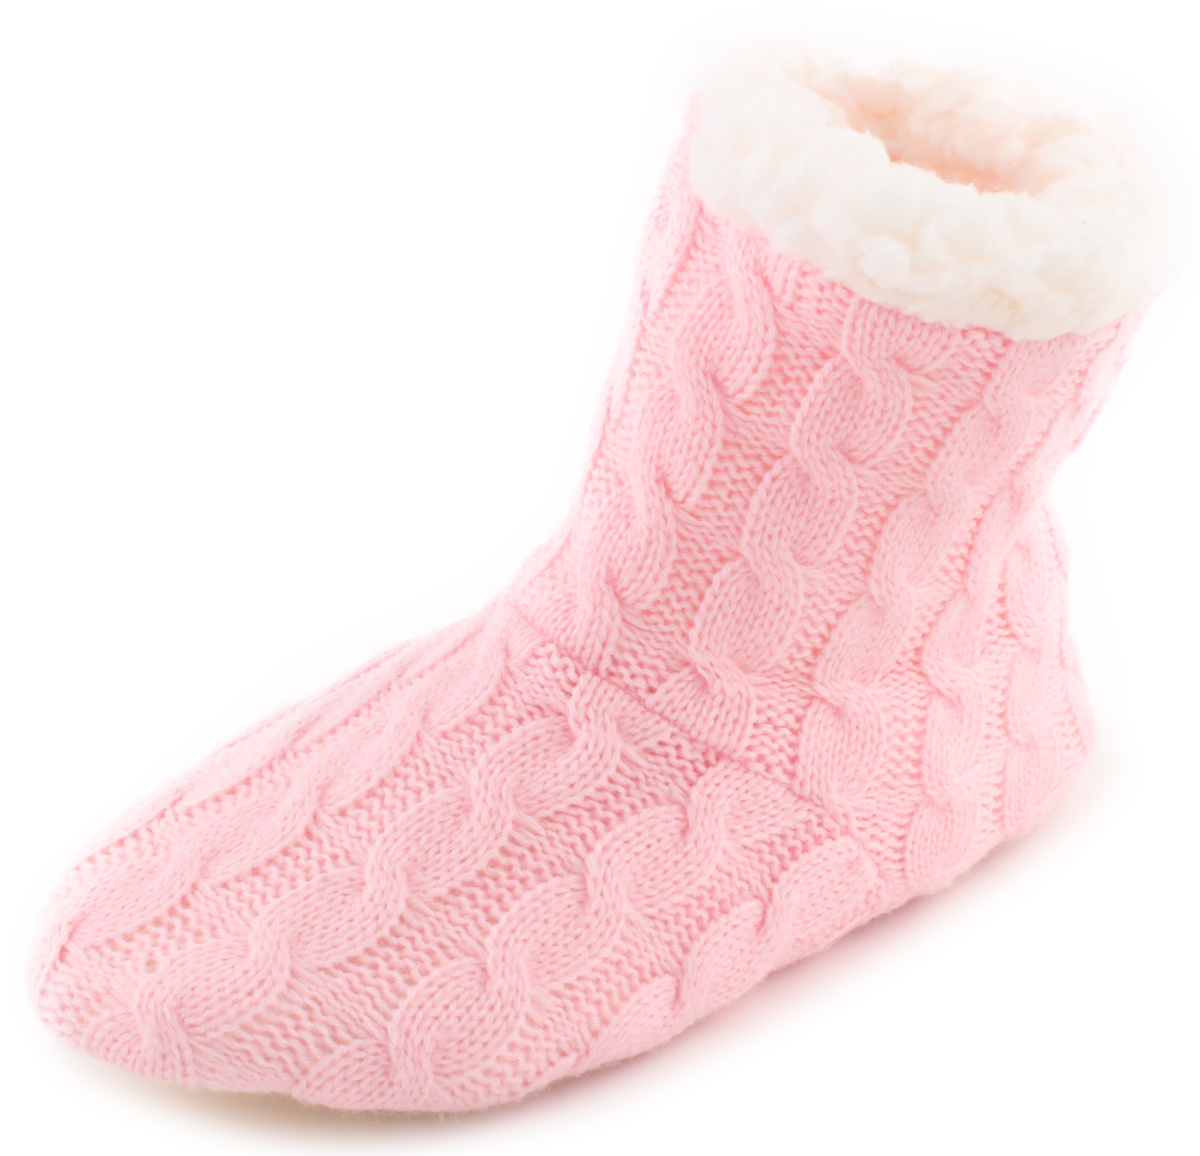 Women's Casual Fashion Cable Knit Slip Plush Rubber Sole No Slip Knit House Slipper Pink | White Womens Small/medium (25cm) 67fcaa